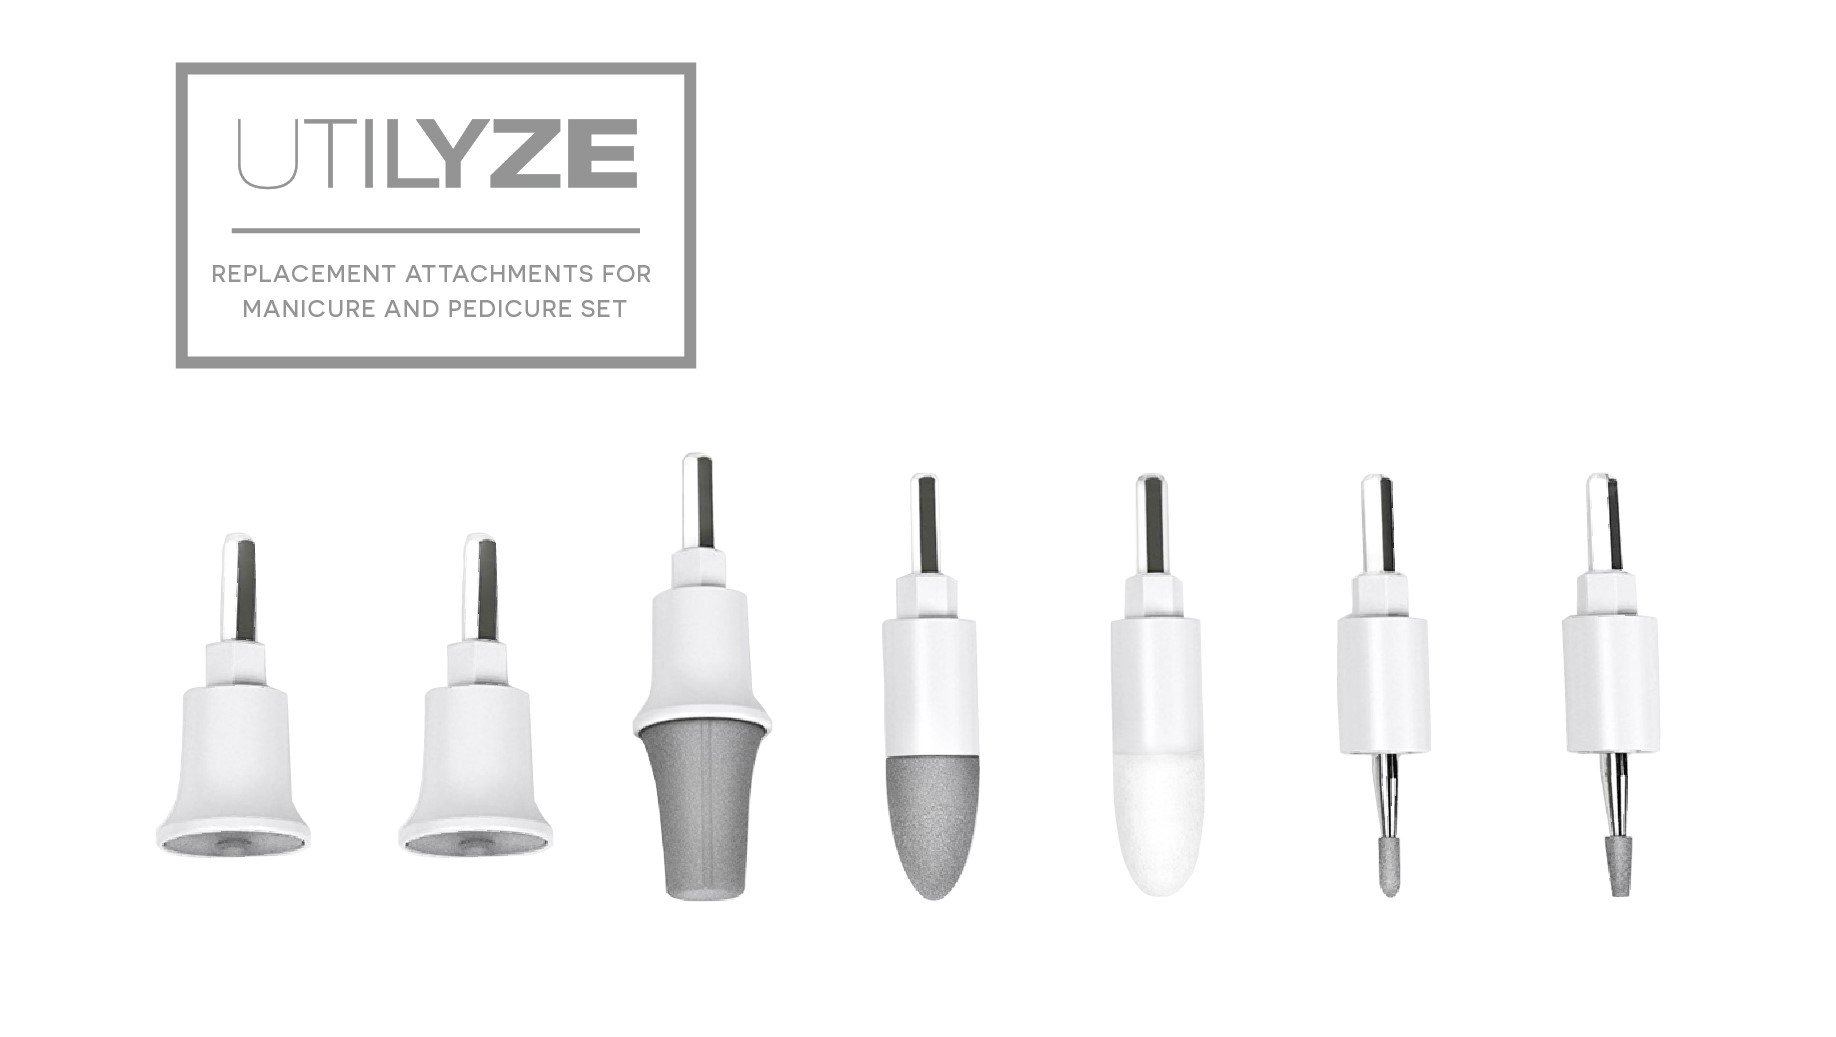 UTILYZE Replacement Attachments for Professional Electric Manicure and Pedicure Set